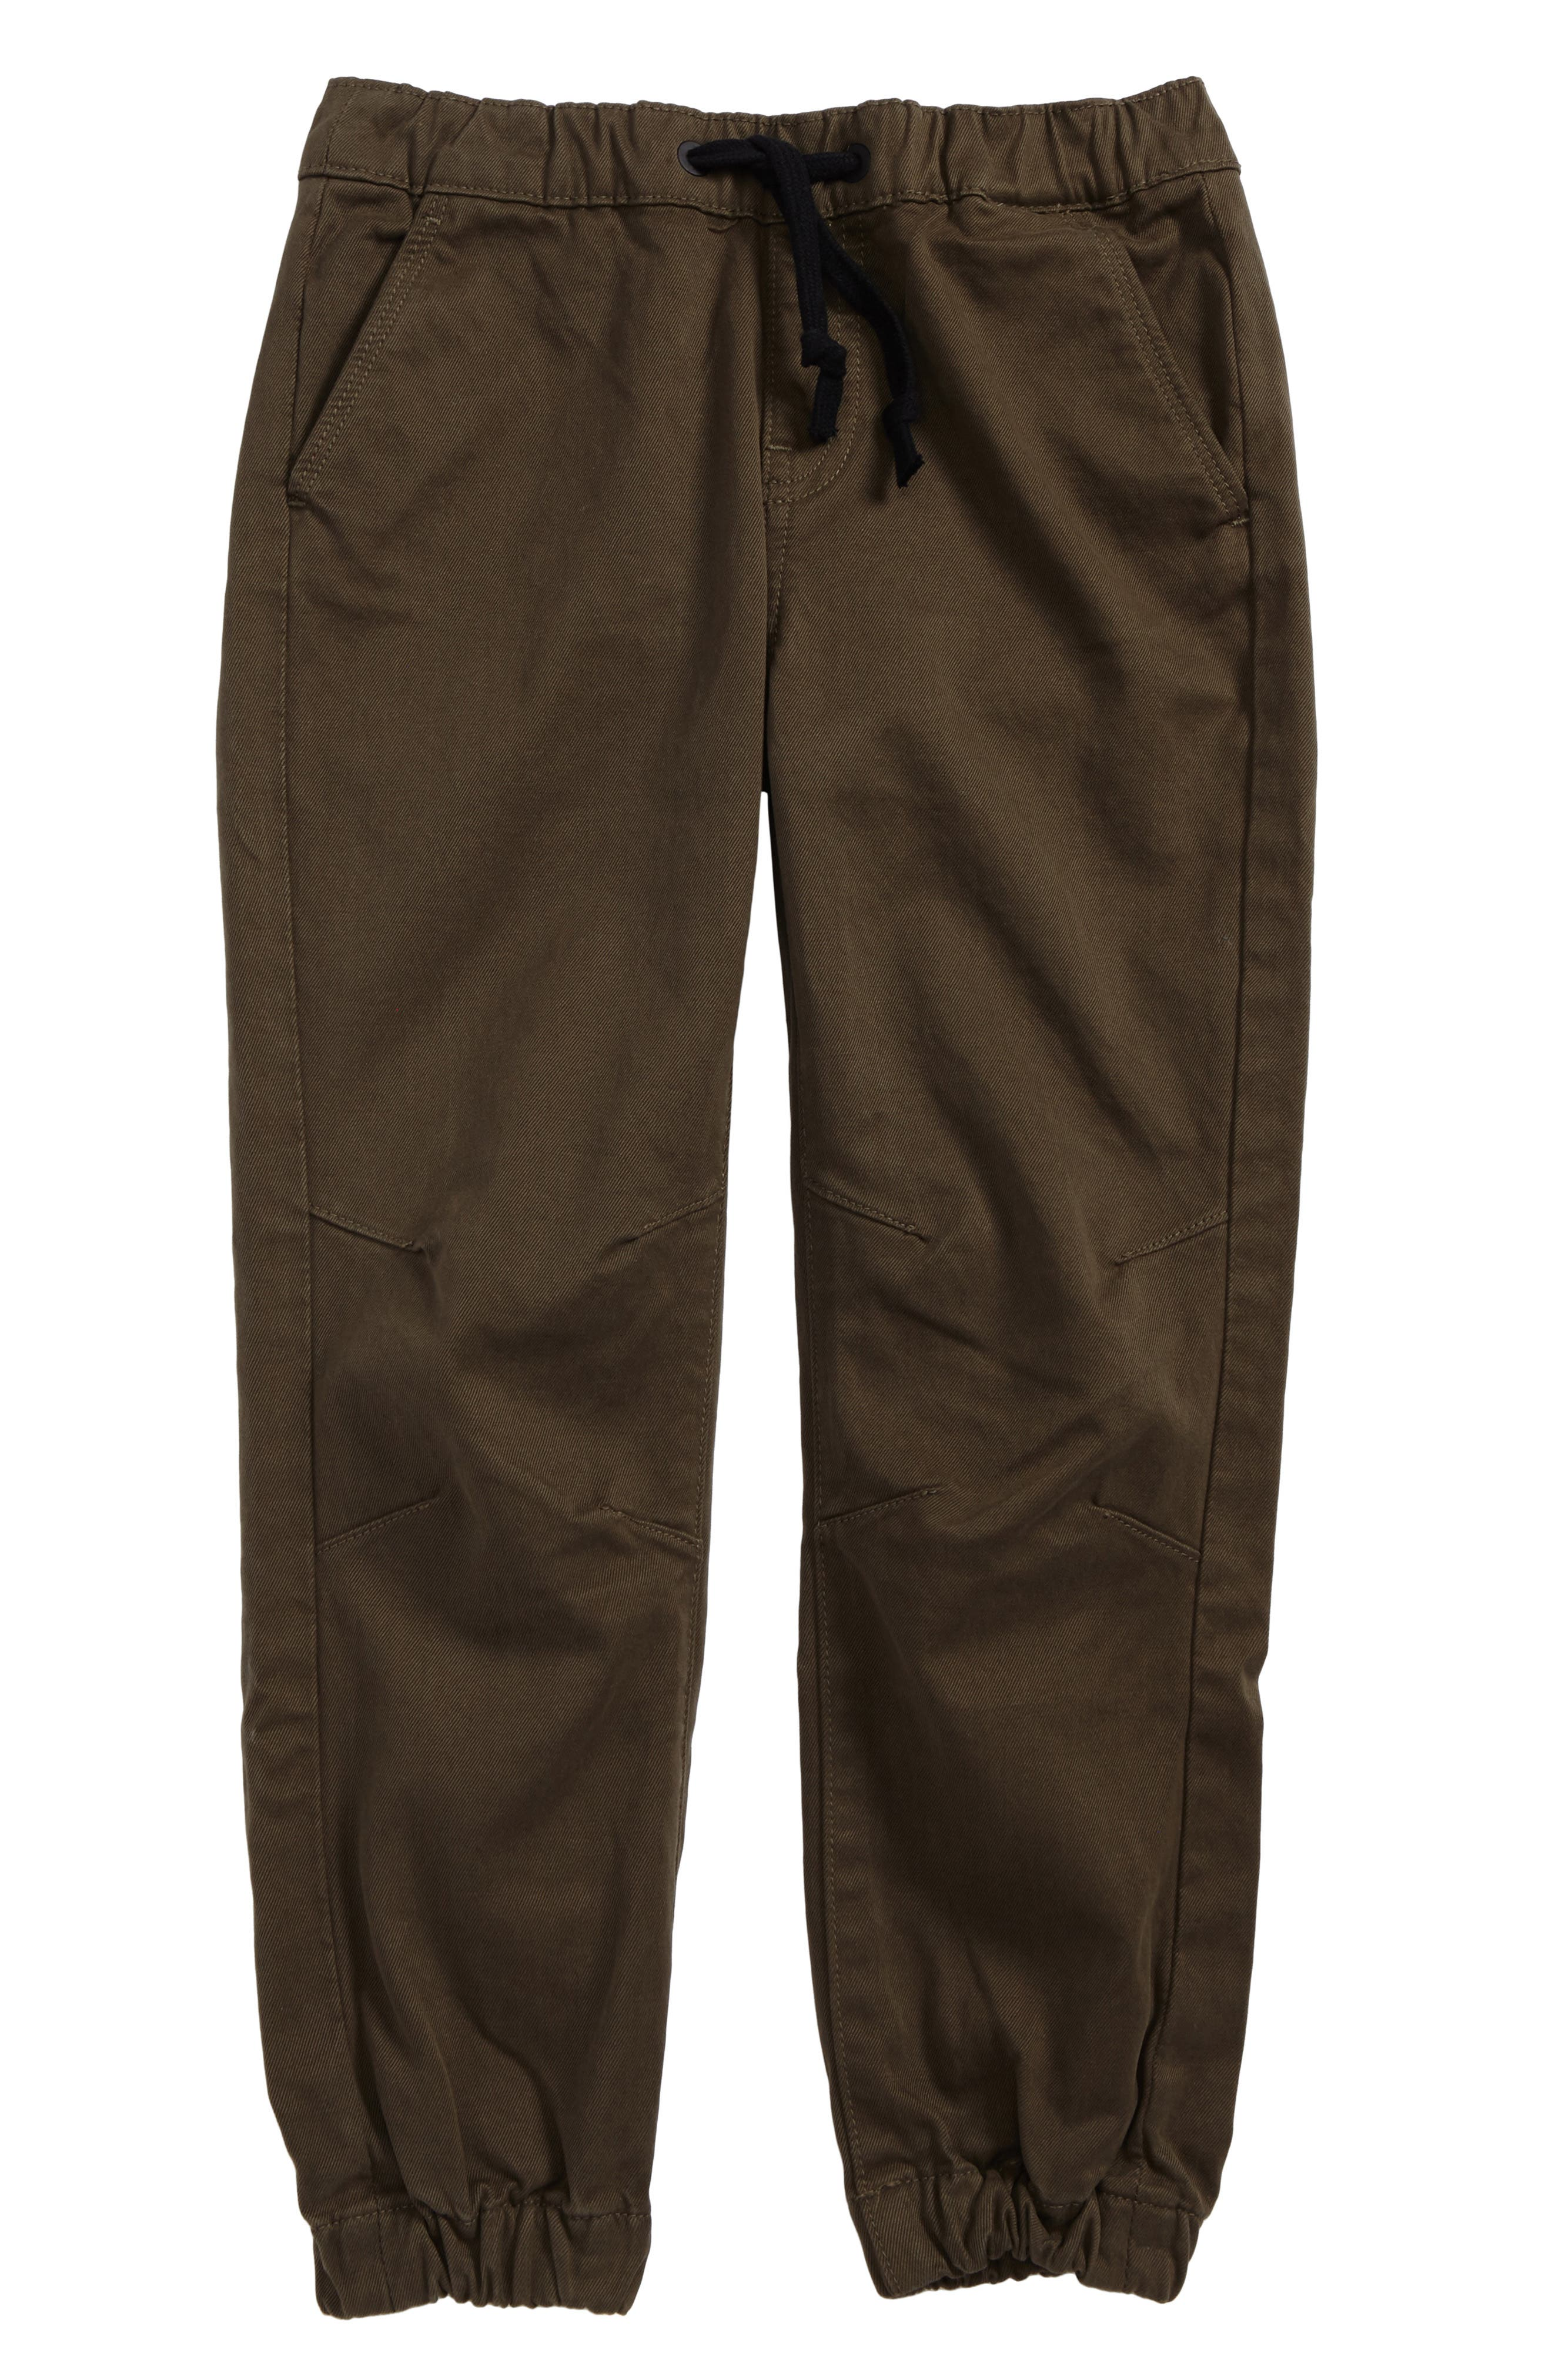 Jackson Jogger Pants,                             Main thumbnail 1, color,                             Basin